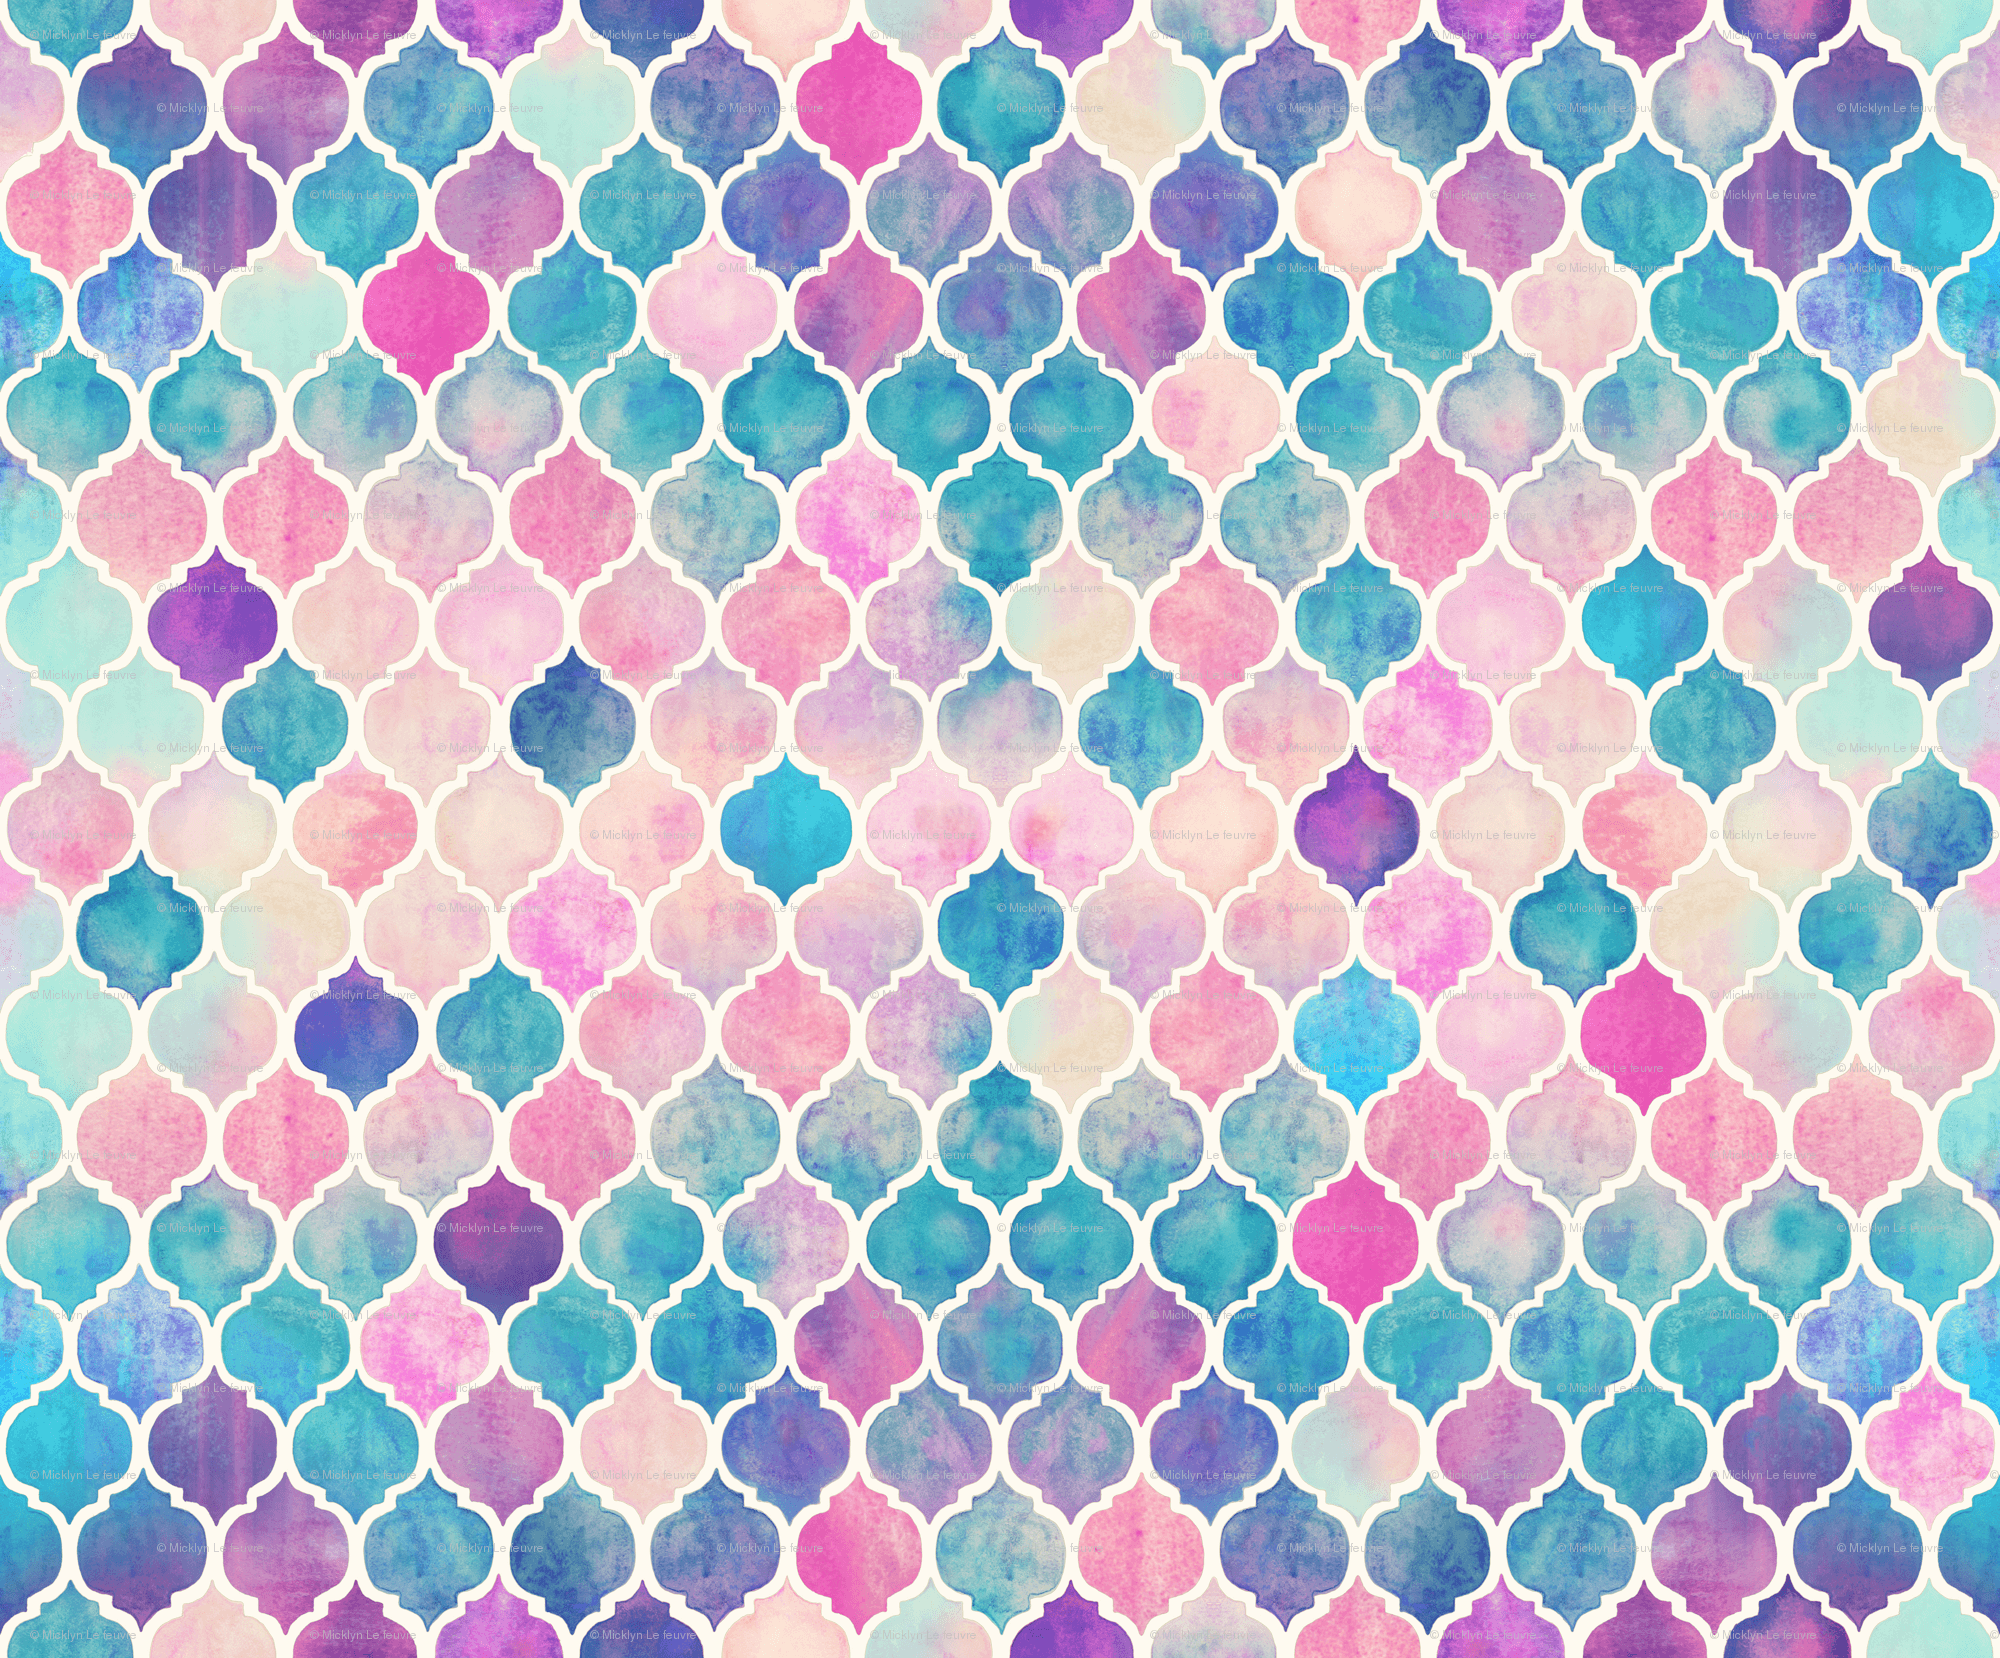 Pastel Watercolor Backgrounds - Wallpaper Cave